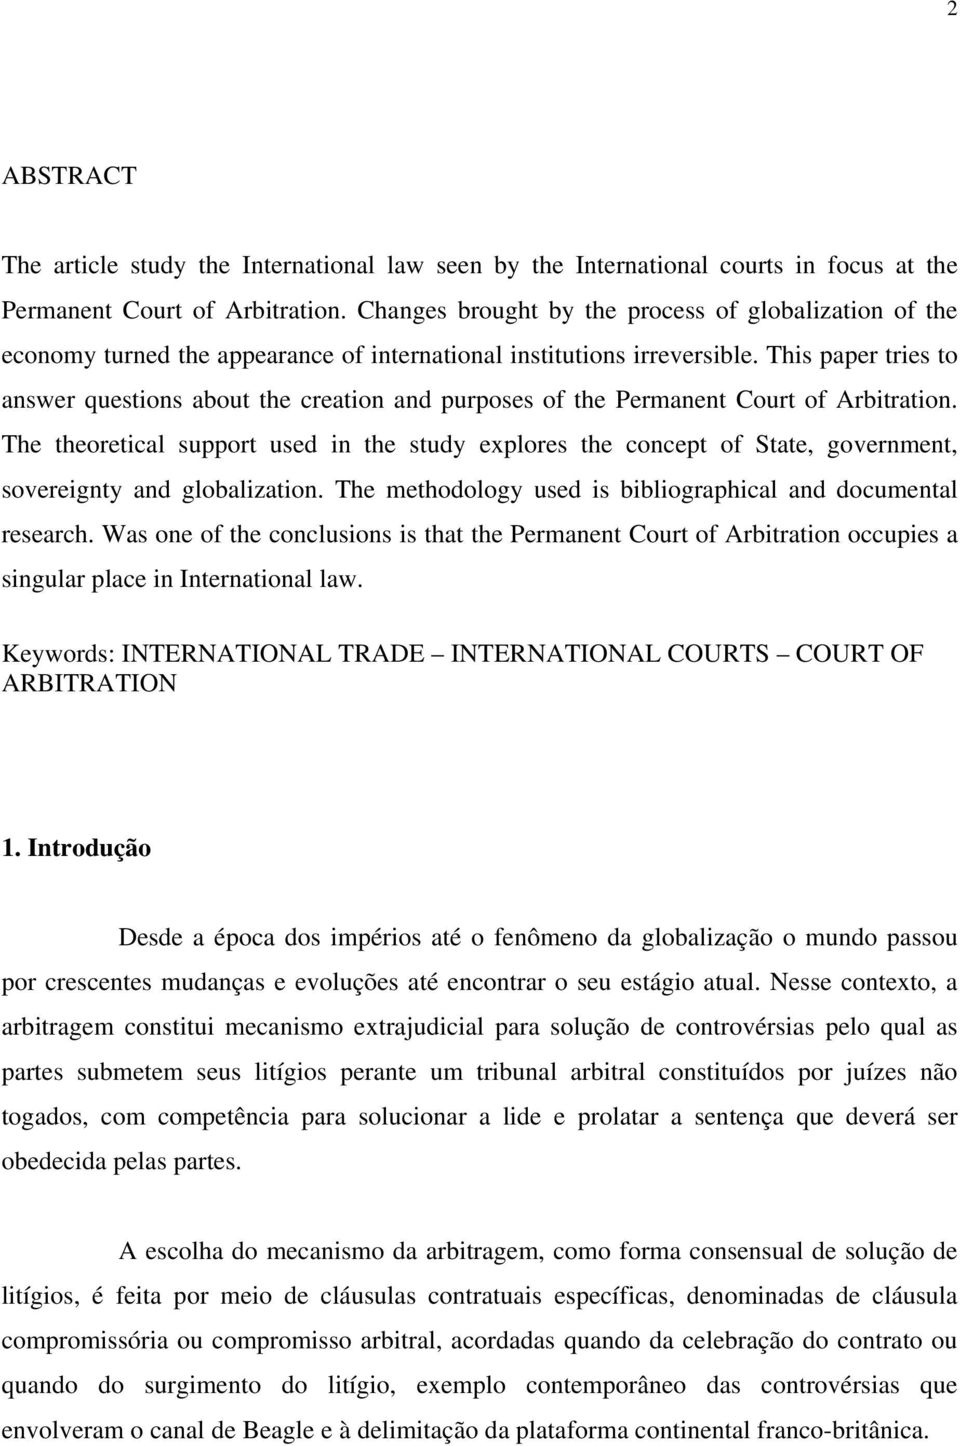 This paper tries to answer questions about the creation and purposes of the Permanent Court of Arbitration.